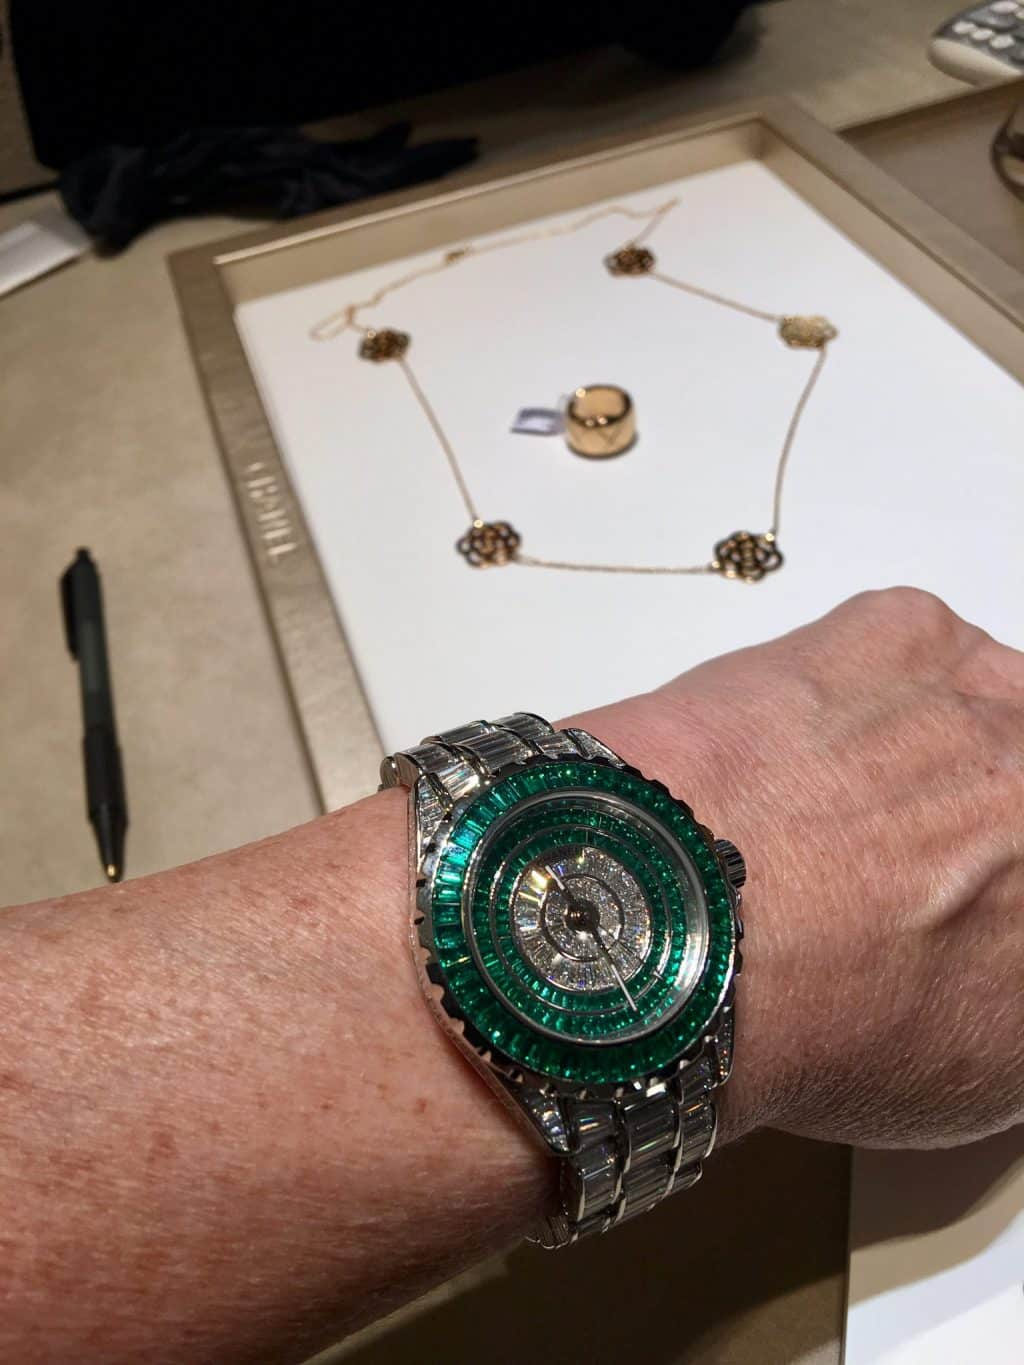 Chanel Paris. Hand is shaking with emerald watch!